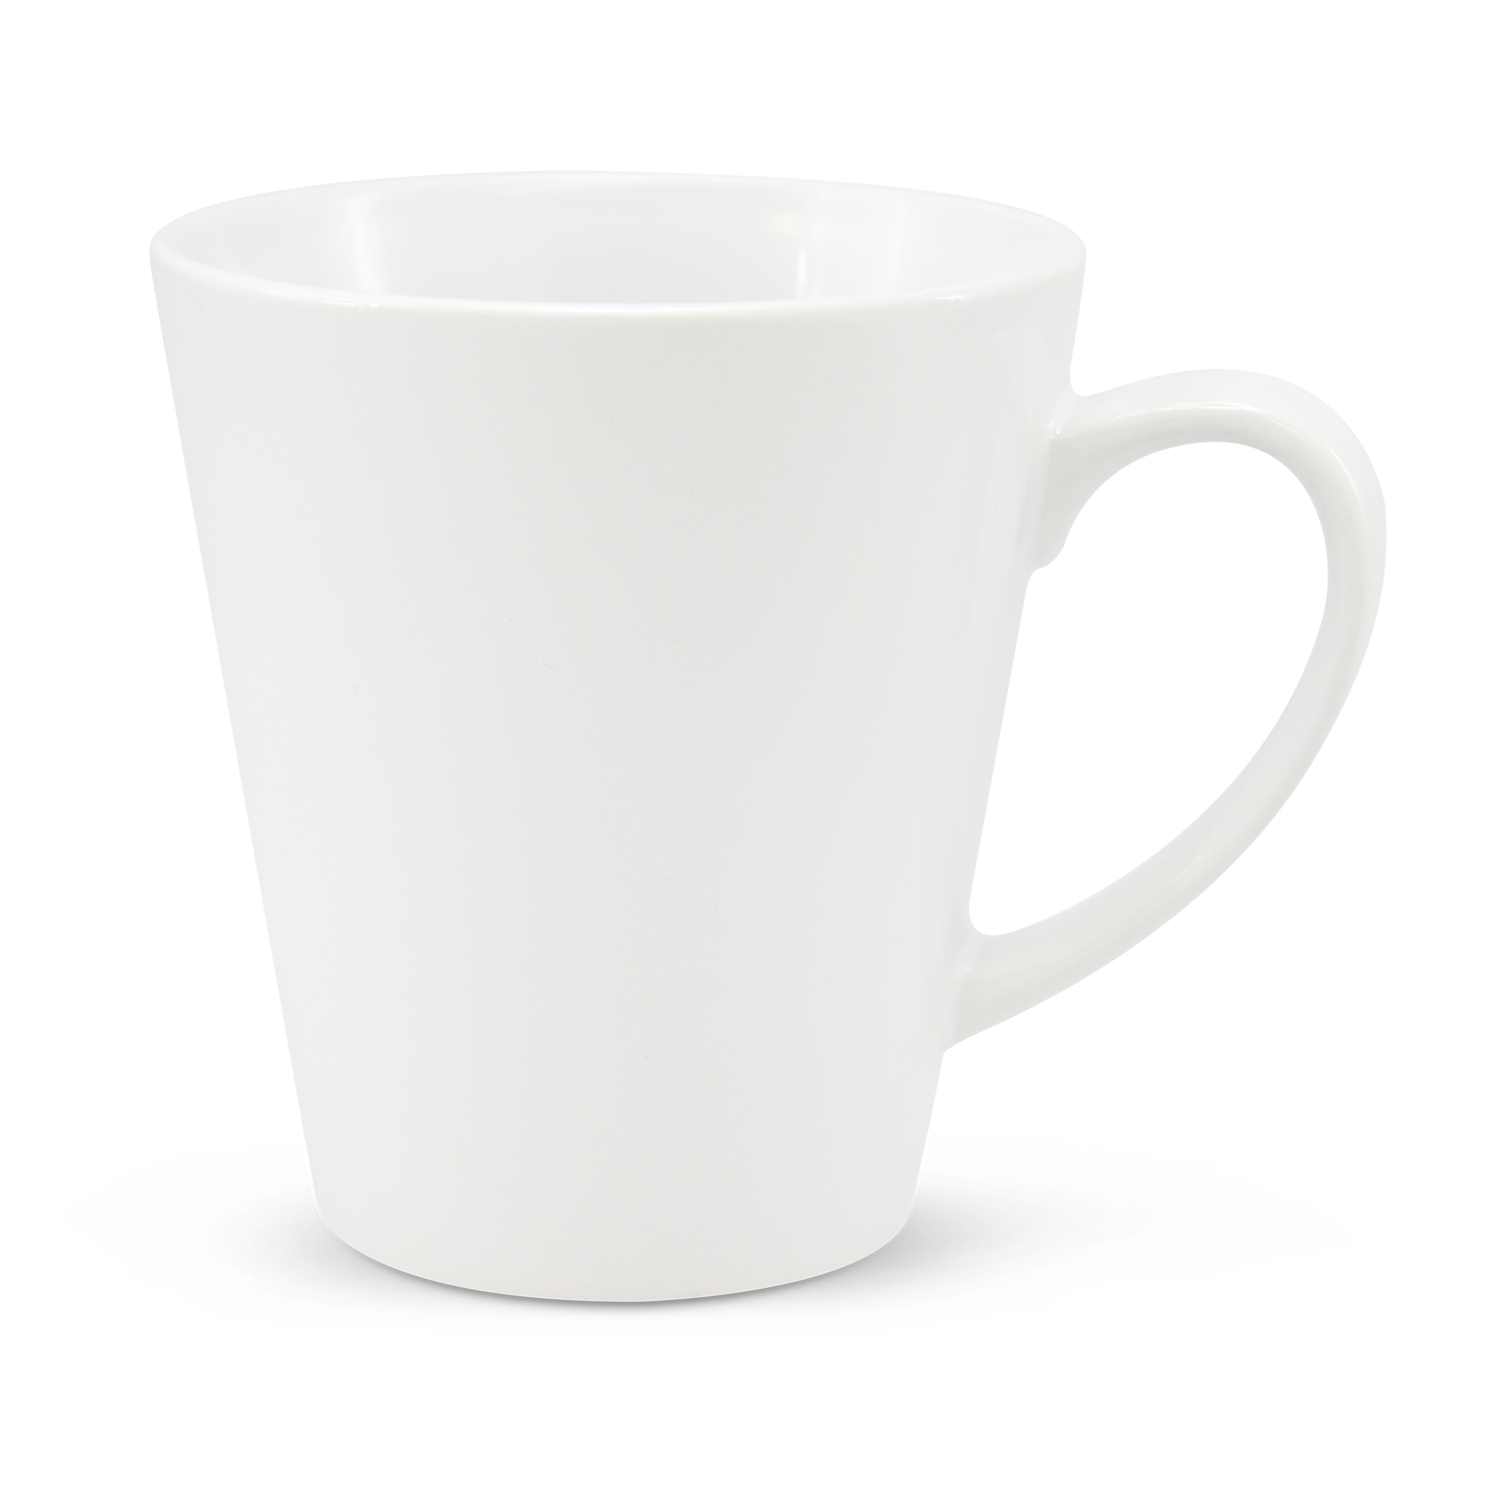 Promotional Latte Coffee Mugs Branded Online Promotion Products